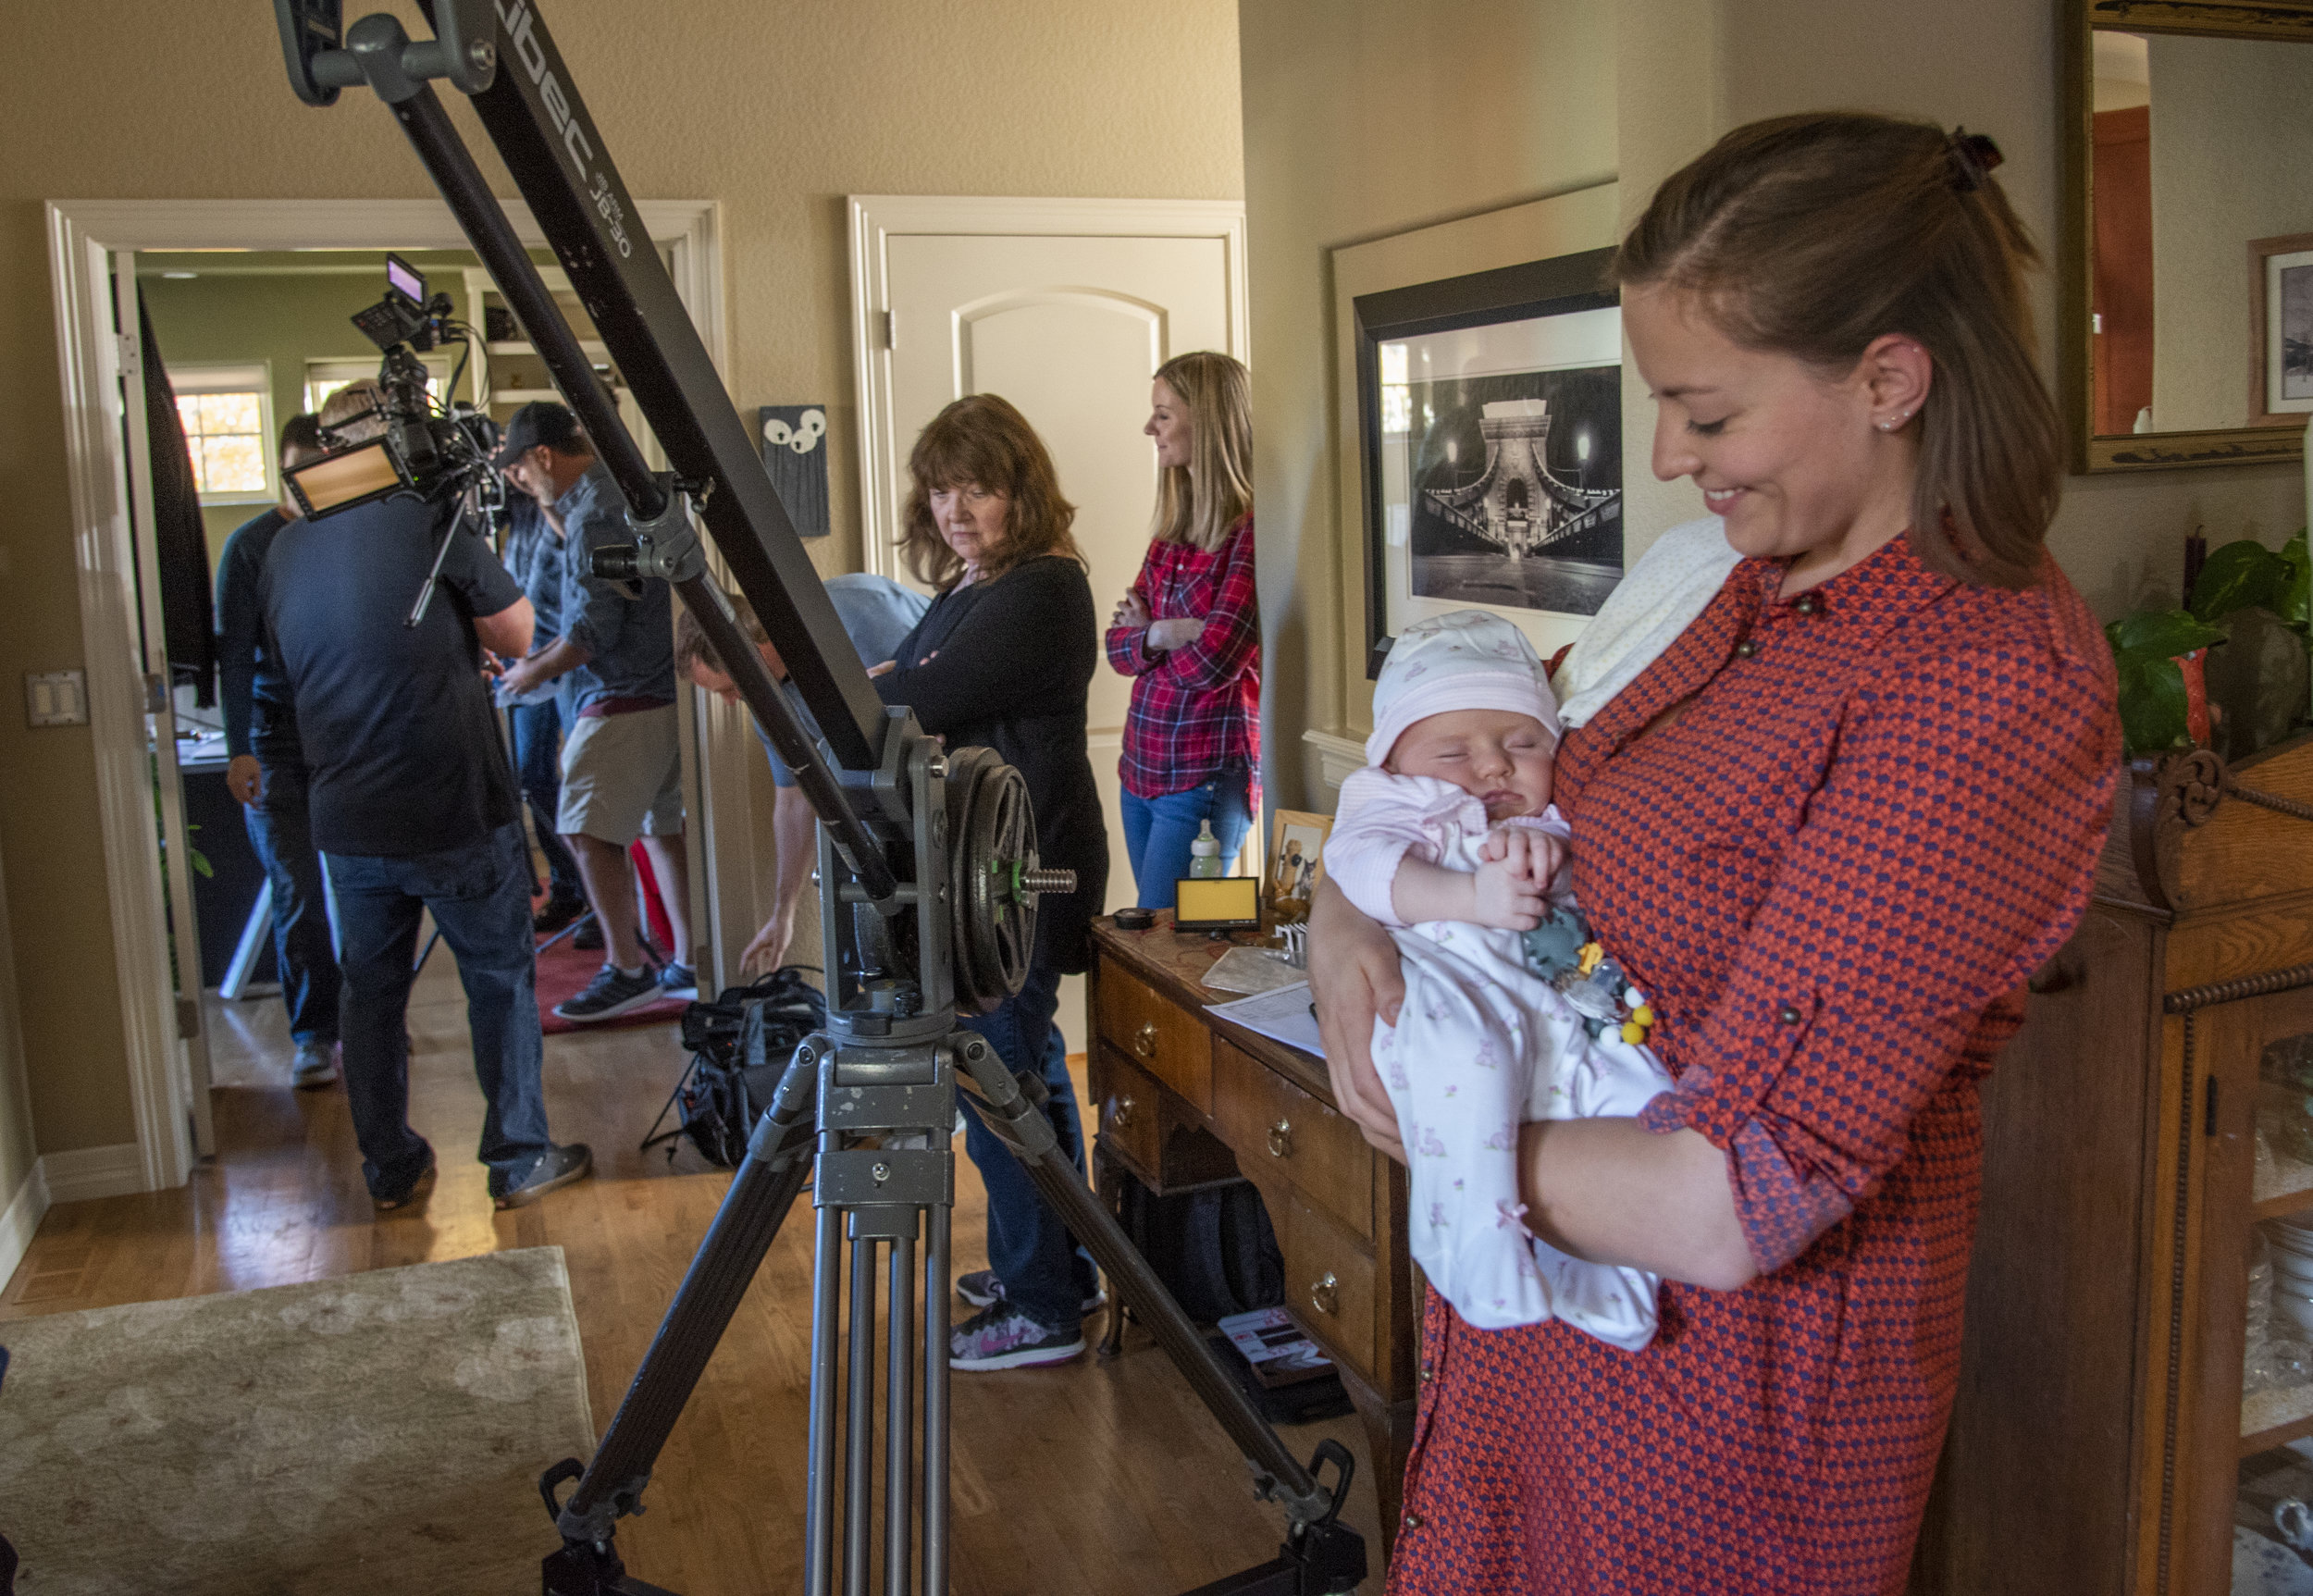 Lead actor Dani Payne (Kate Novak) hangs out with infant actor Avery Vandenberg (Chloe Novak) as the crew adjusts for a camera move.